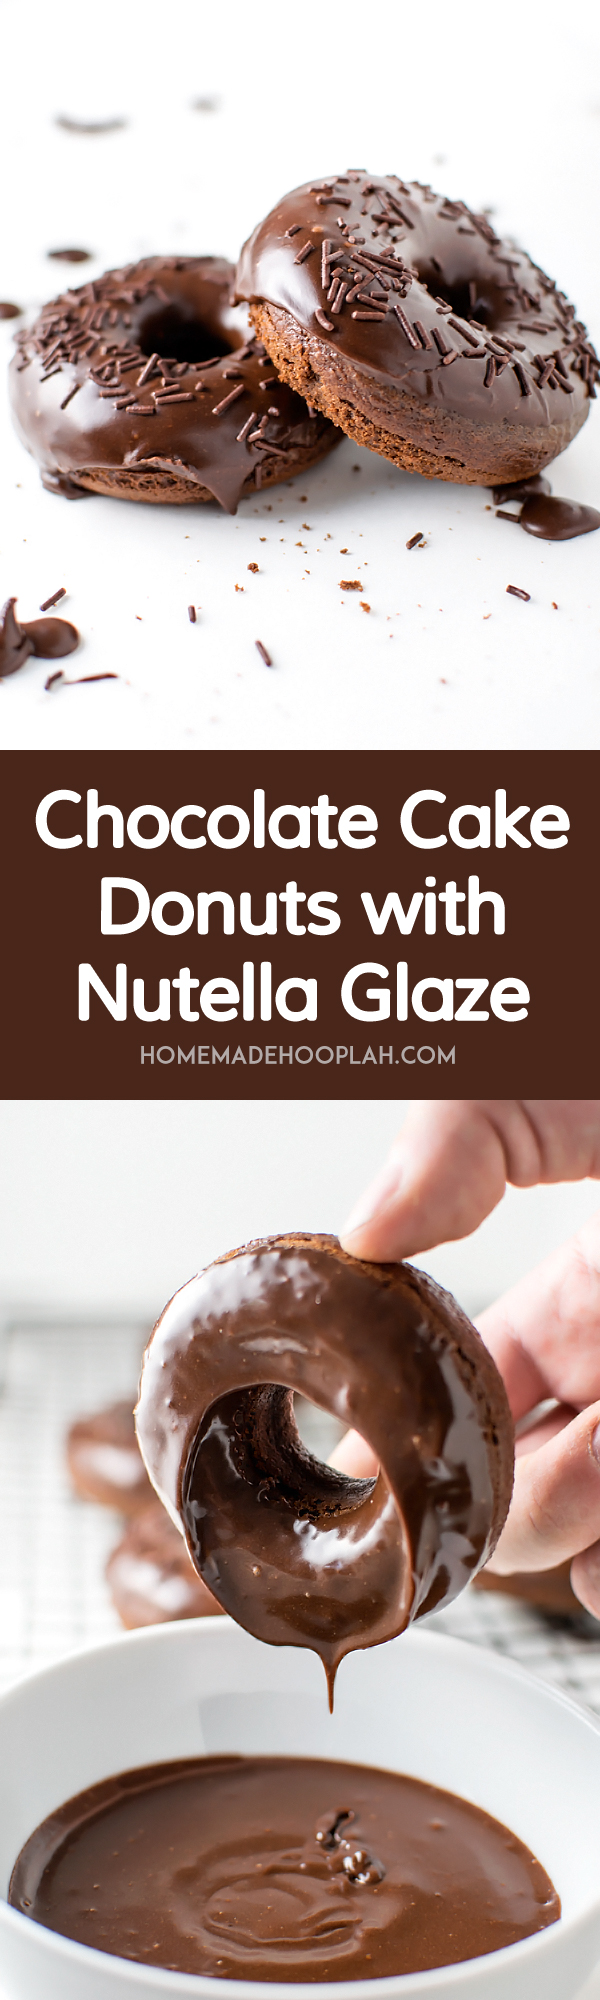 Quick Nutella Icing Recipe Chocolate Cake Donuts With Nutella Glaze Homemade Hooplah